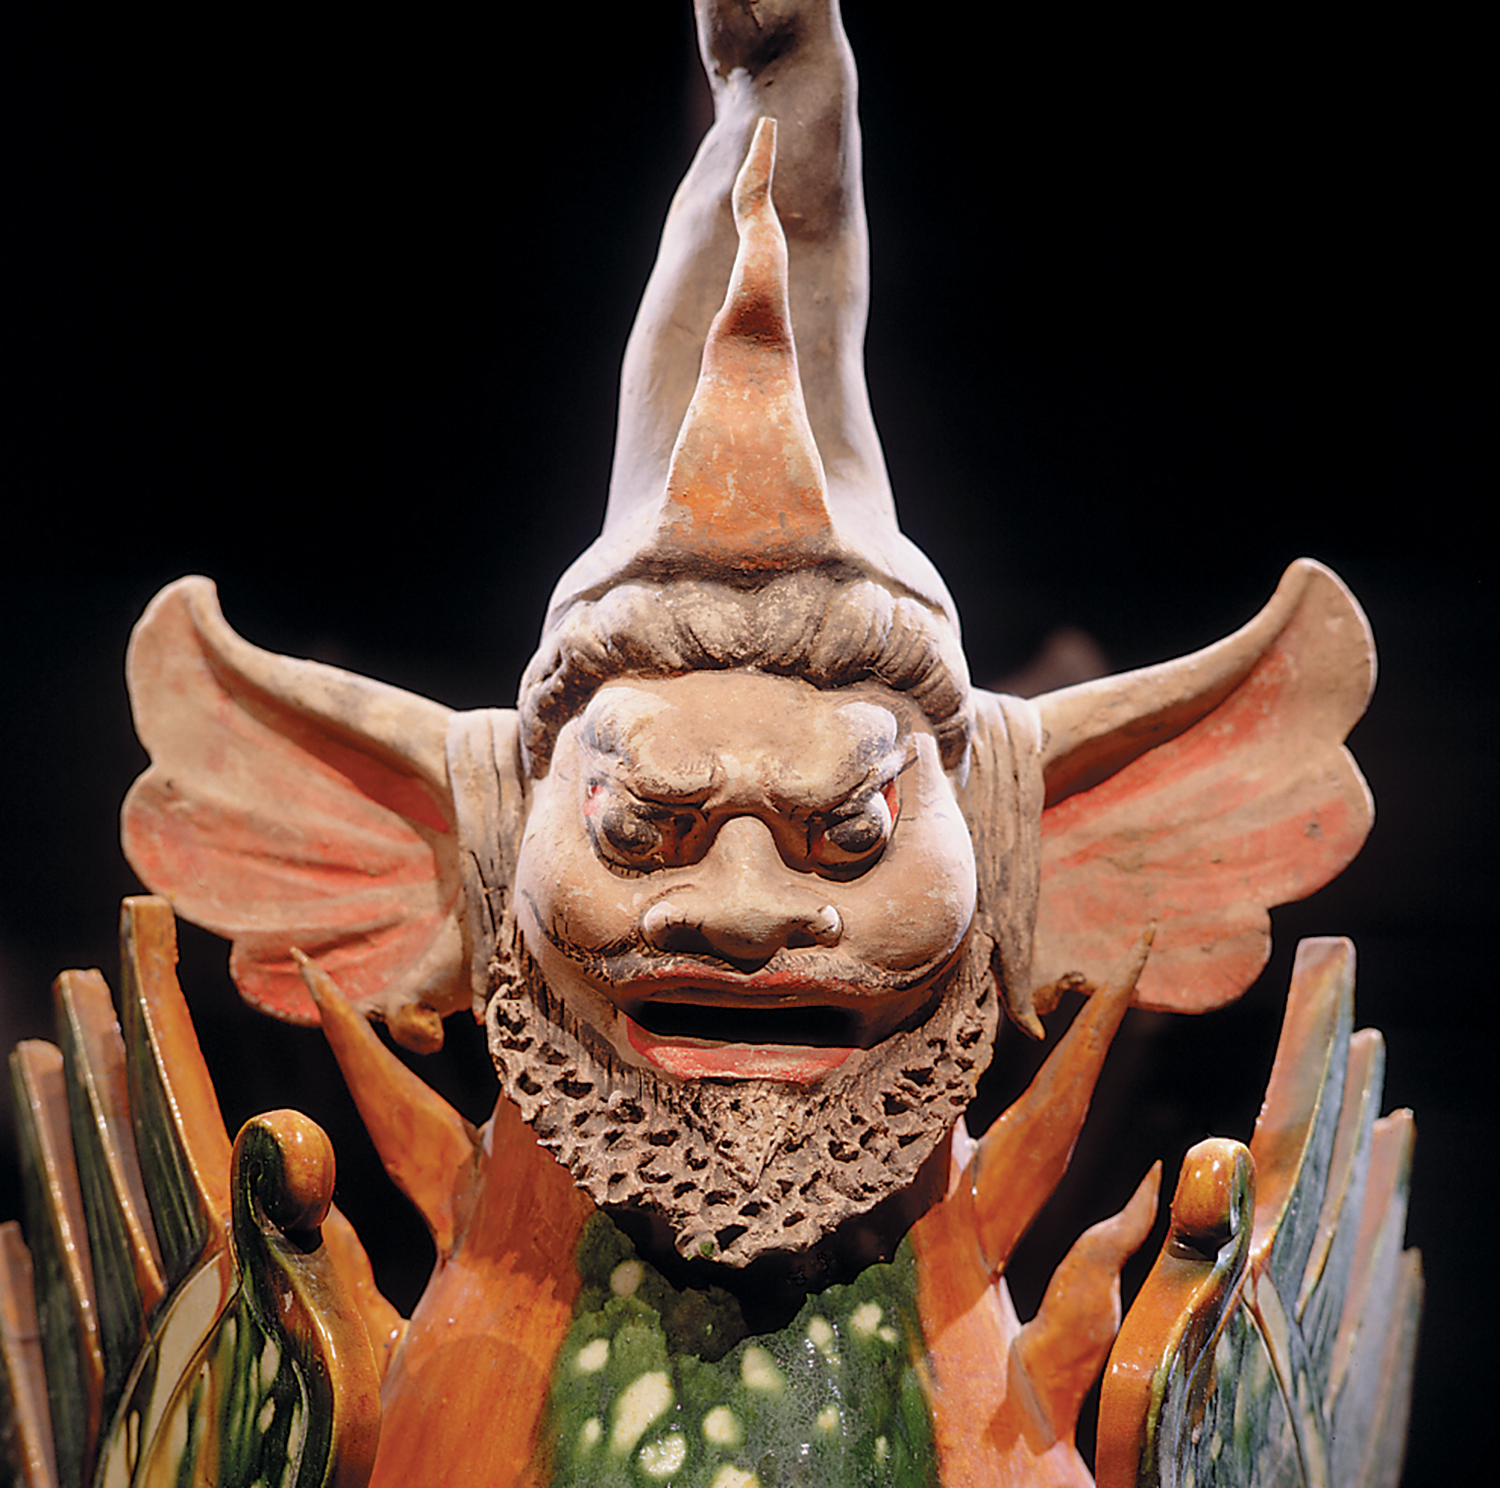 A ceramic figurine of a human face with a dragon body.